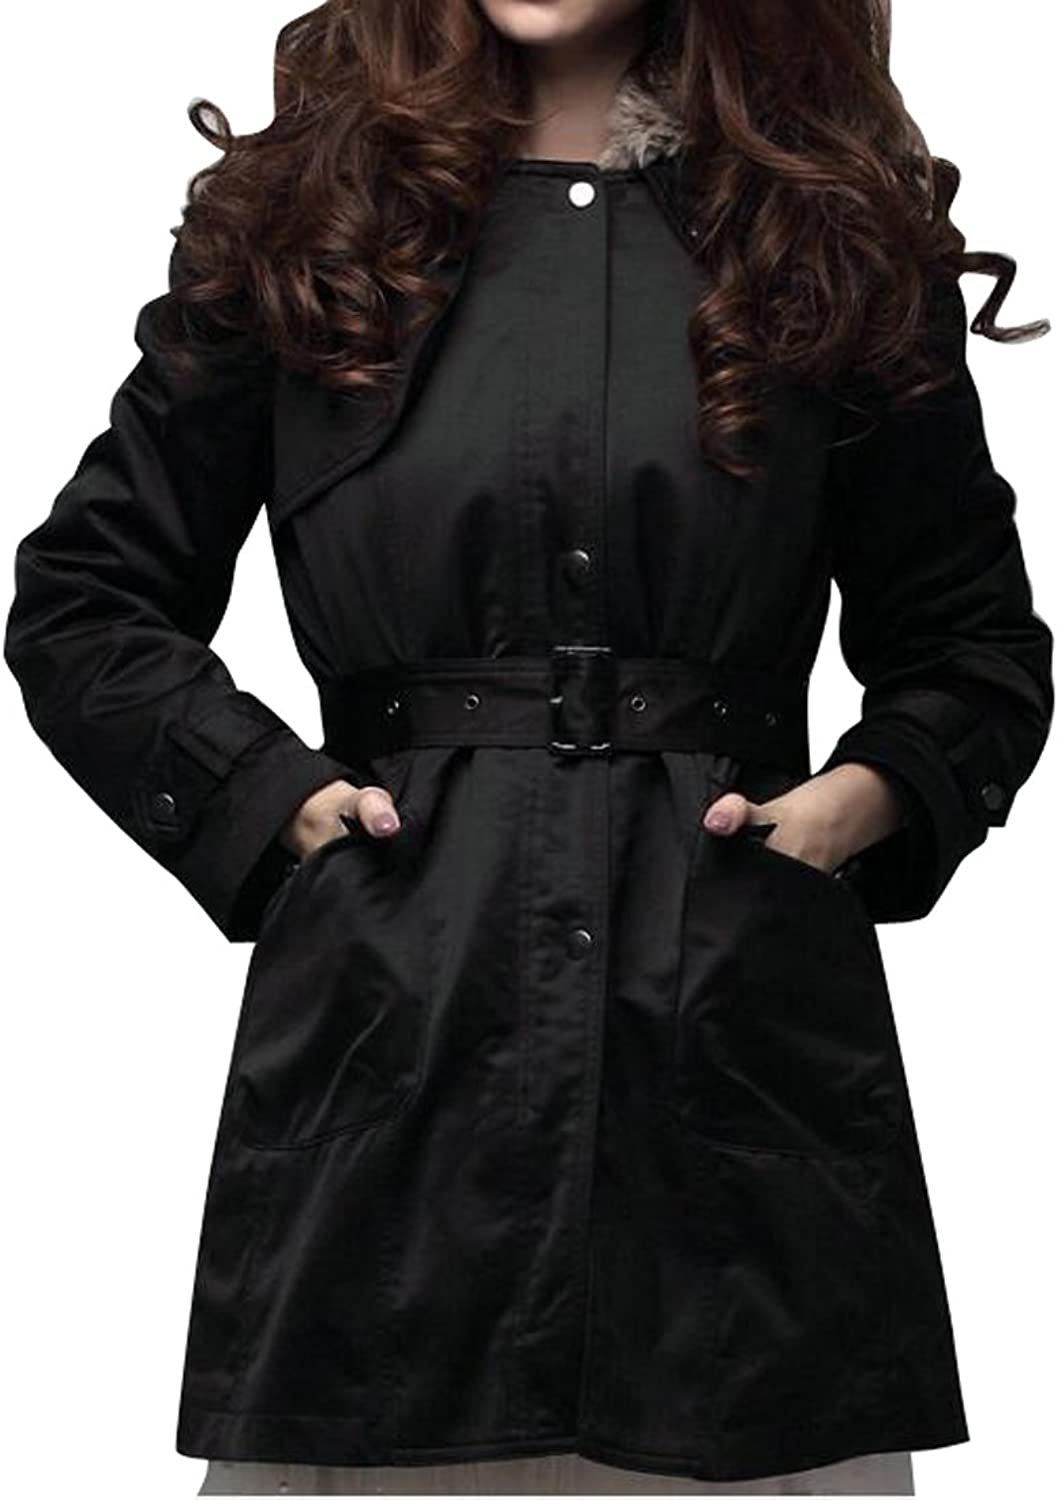 WAYAWomen Winter Thicken Coat Faux Fur Lined Hood Belted Quilted Jacket Overcoat